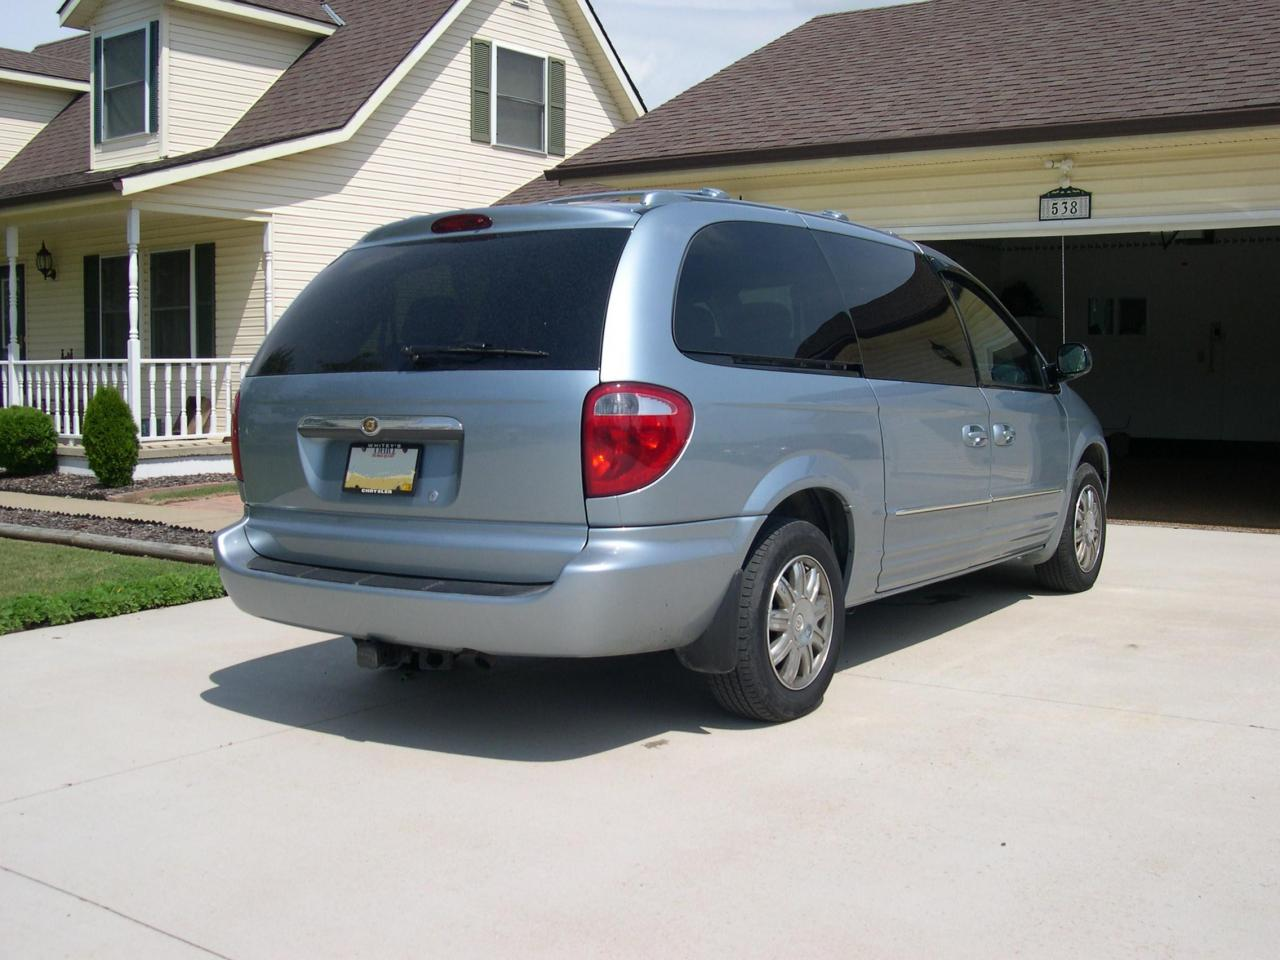 2005 chrysler town and country information and photos zombiedrive. Black Bedroom Furniture Sets. Home Design Ideas